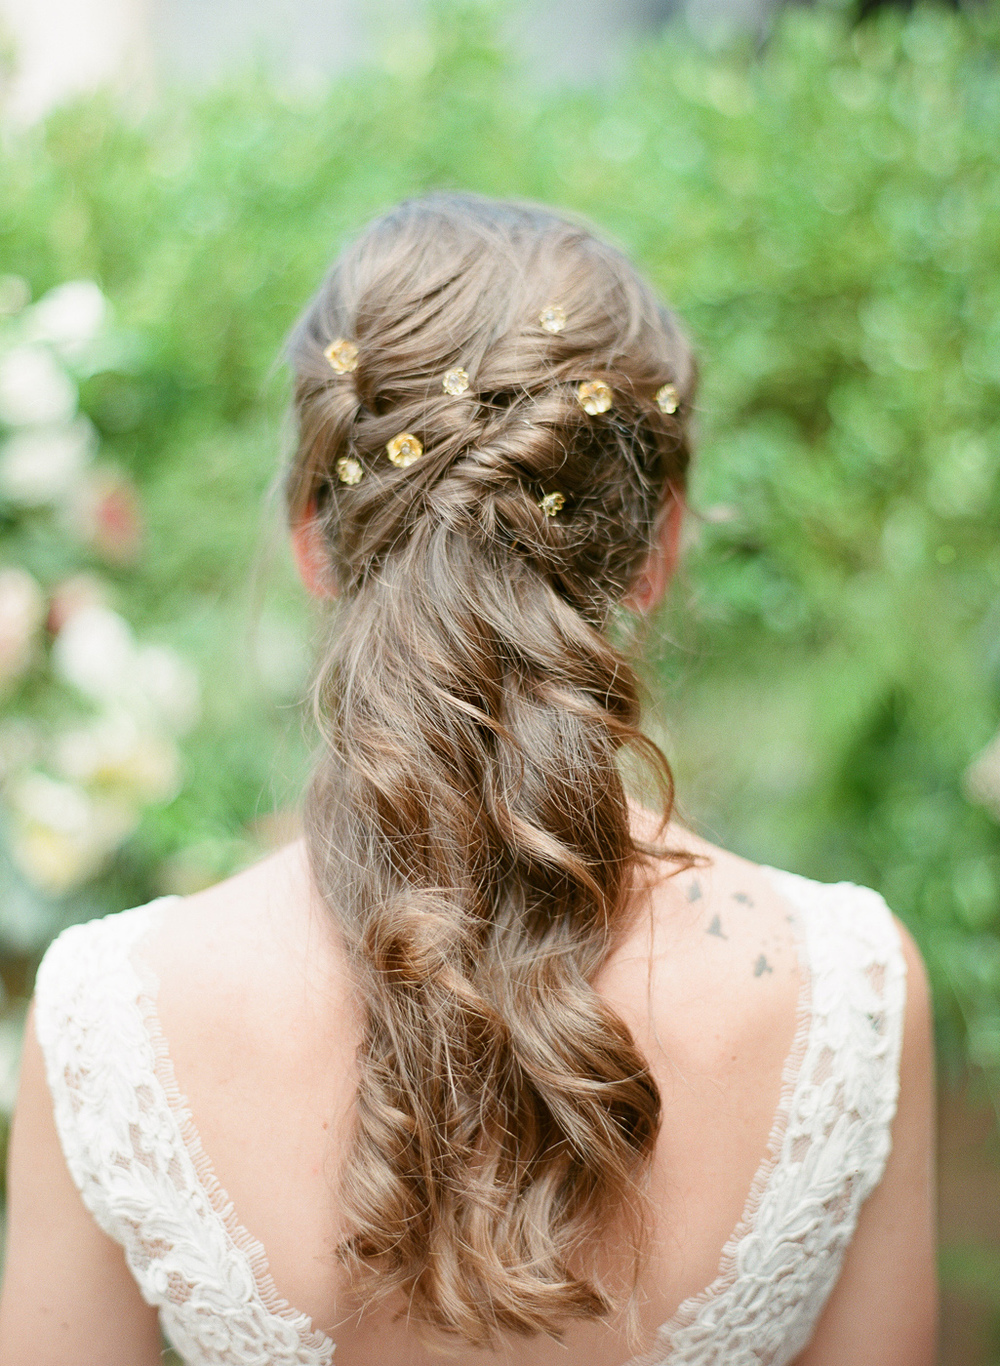 gold flower hair pins by hushed commotion